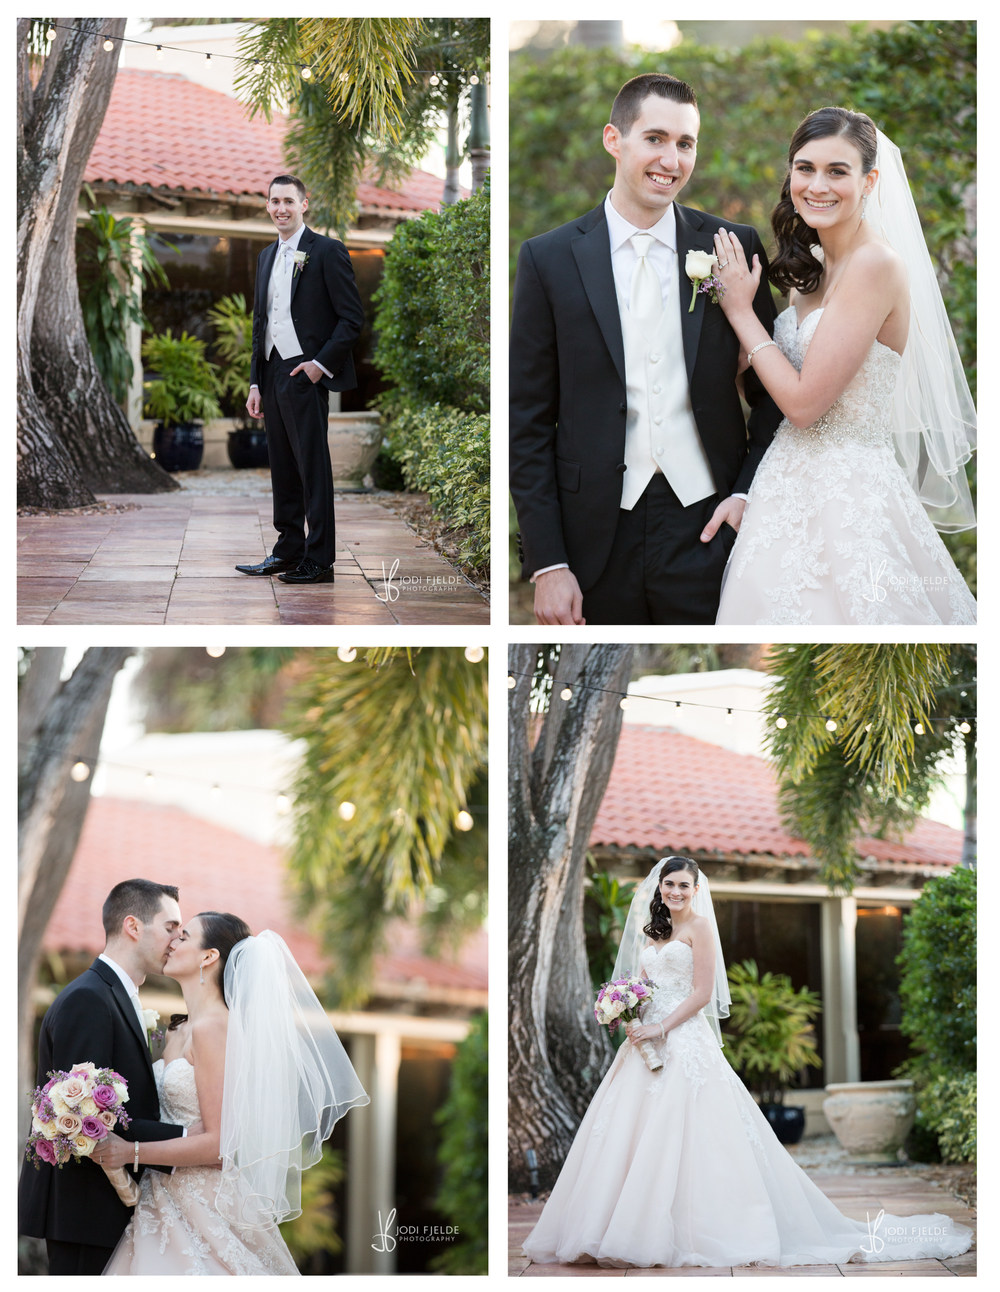 Benvenuto_Palm_Beach_Wedding_Jewish_Michelle & Jason_Jodi_Fjedle_Photography 32.jpg